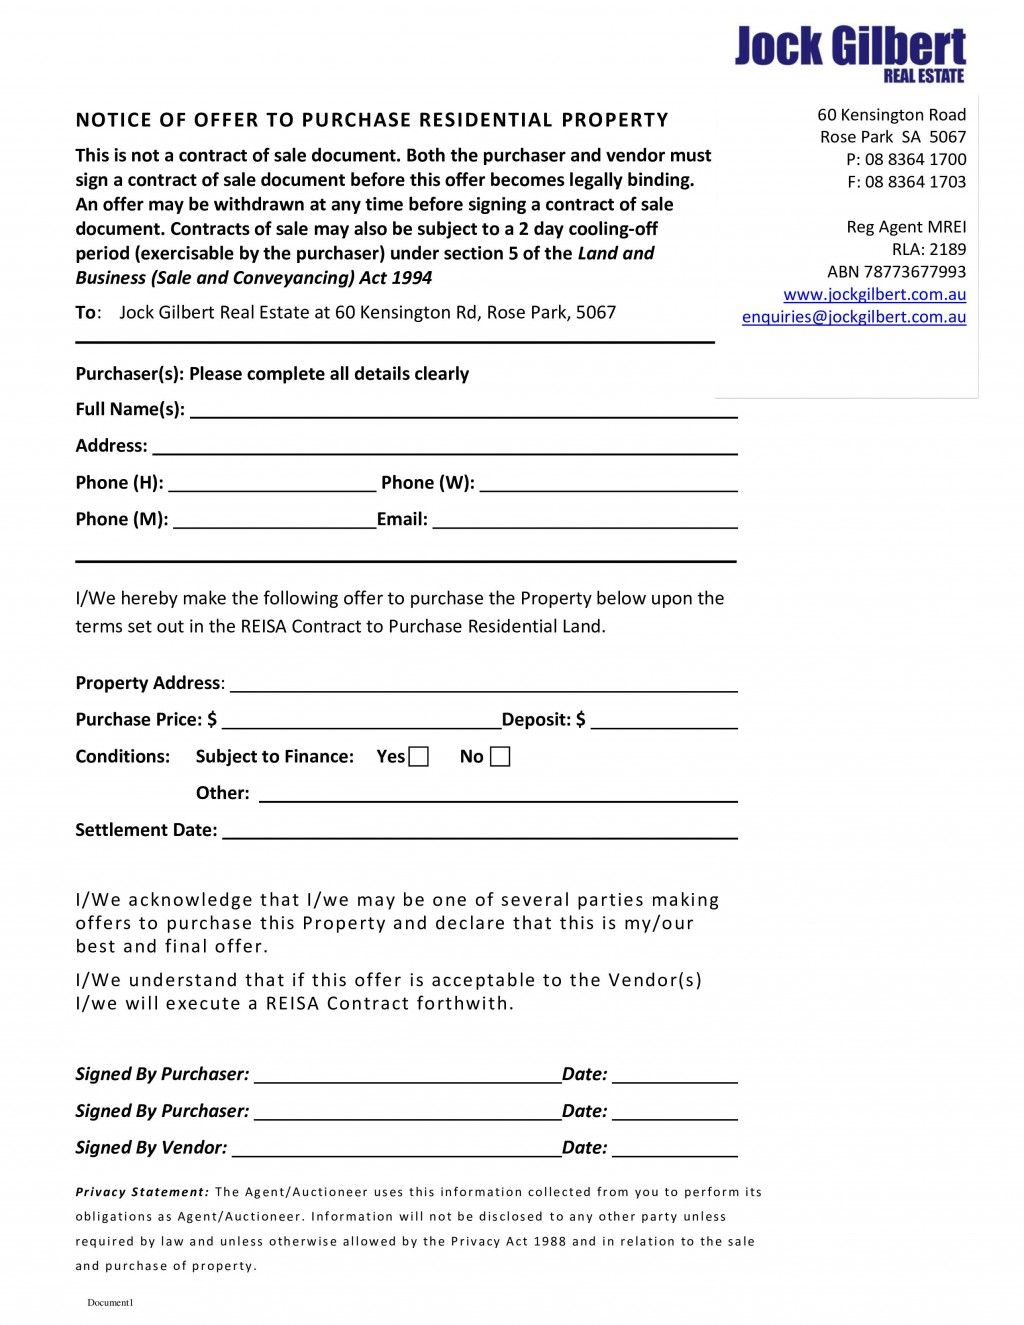 001 Archaicawful House Offer Letter Template High Resolution  Purchase UkLarge